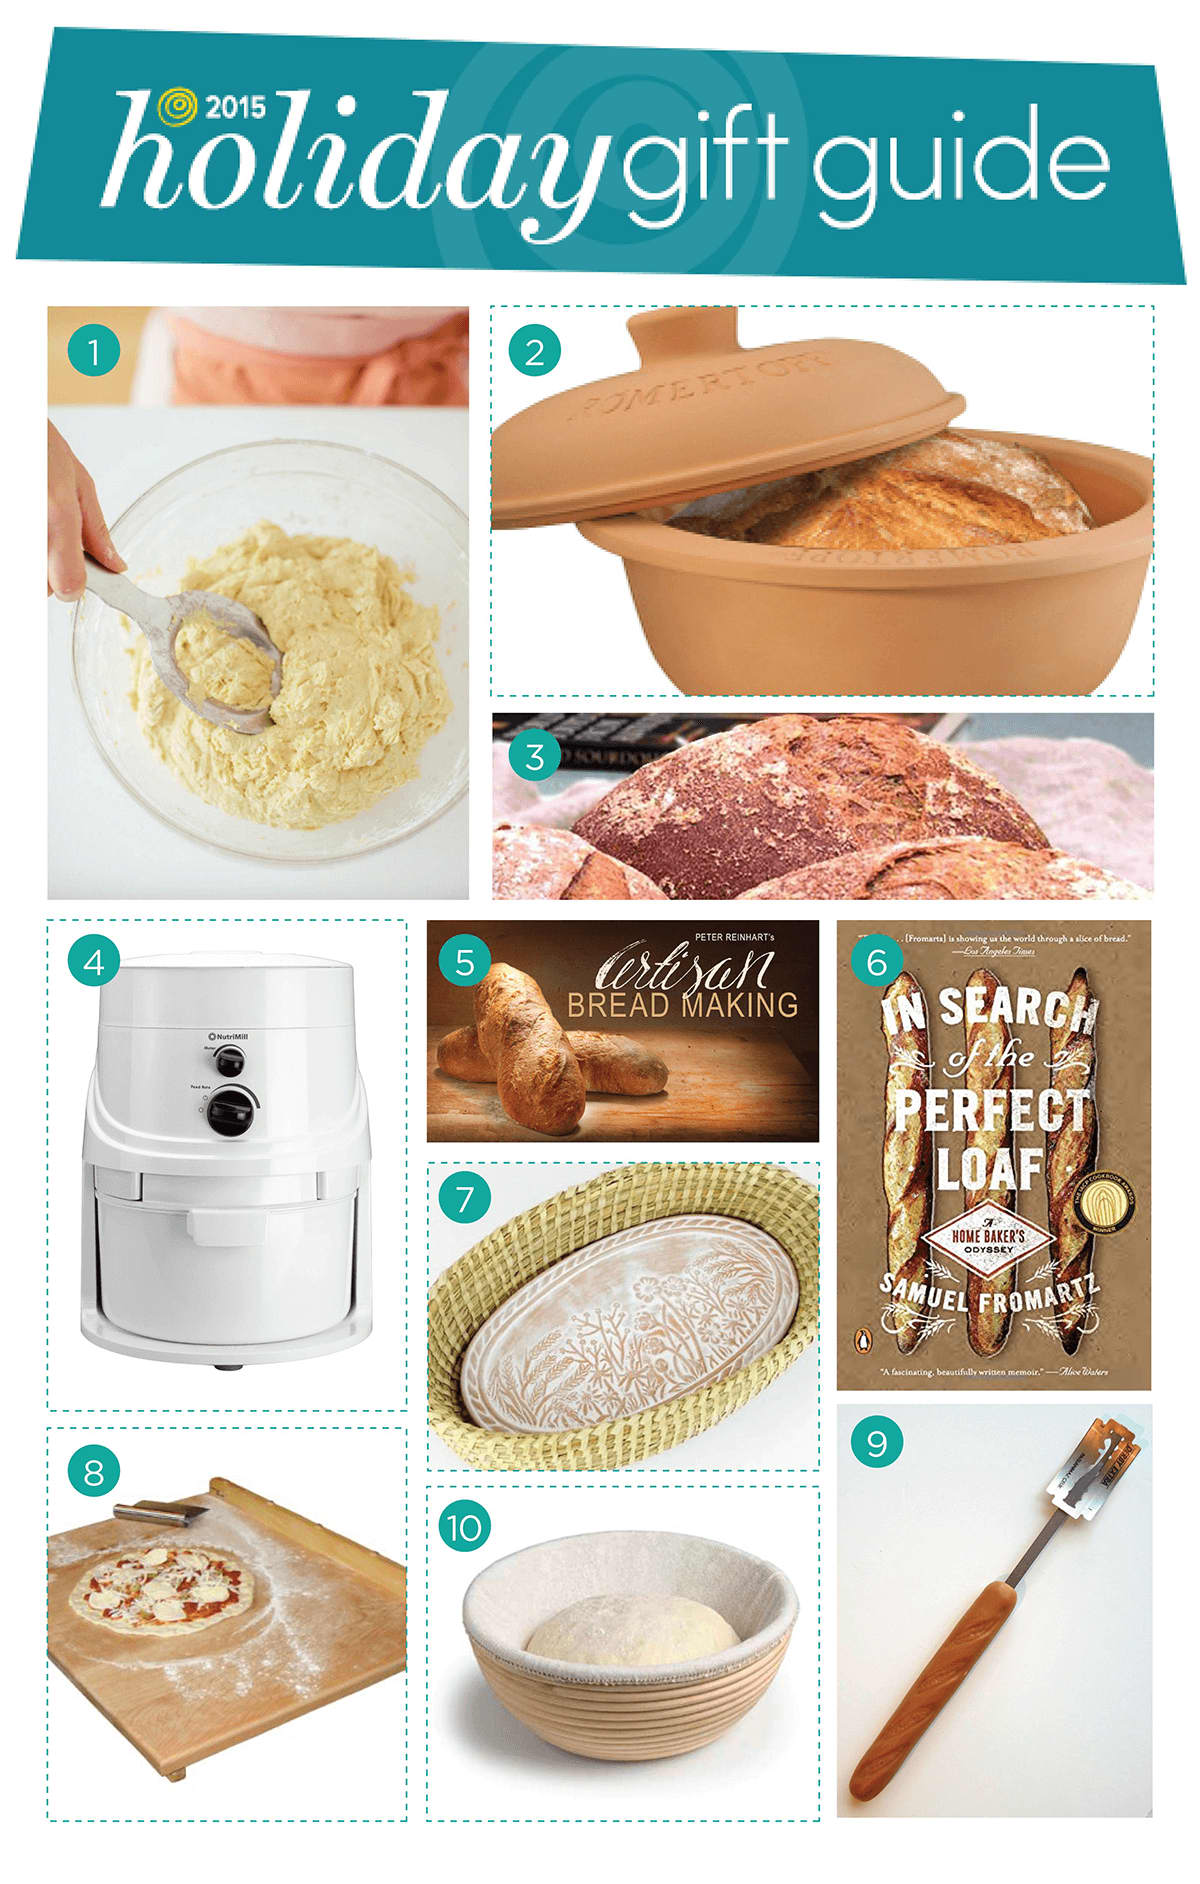 The Kitchn's 2015 Holiday Gift Guide for Bread Bakers